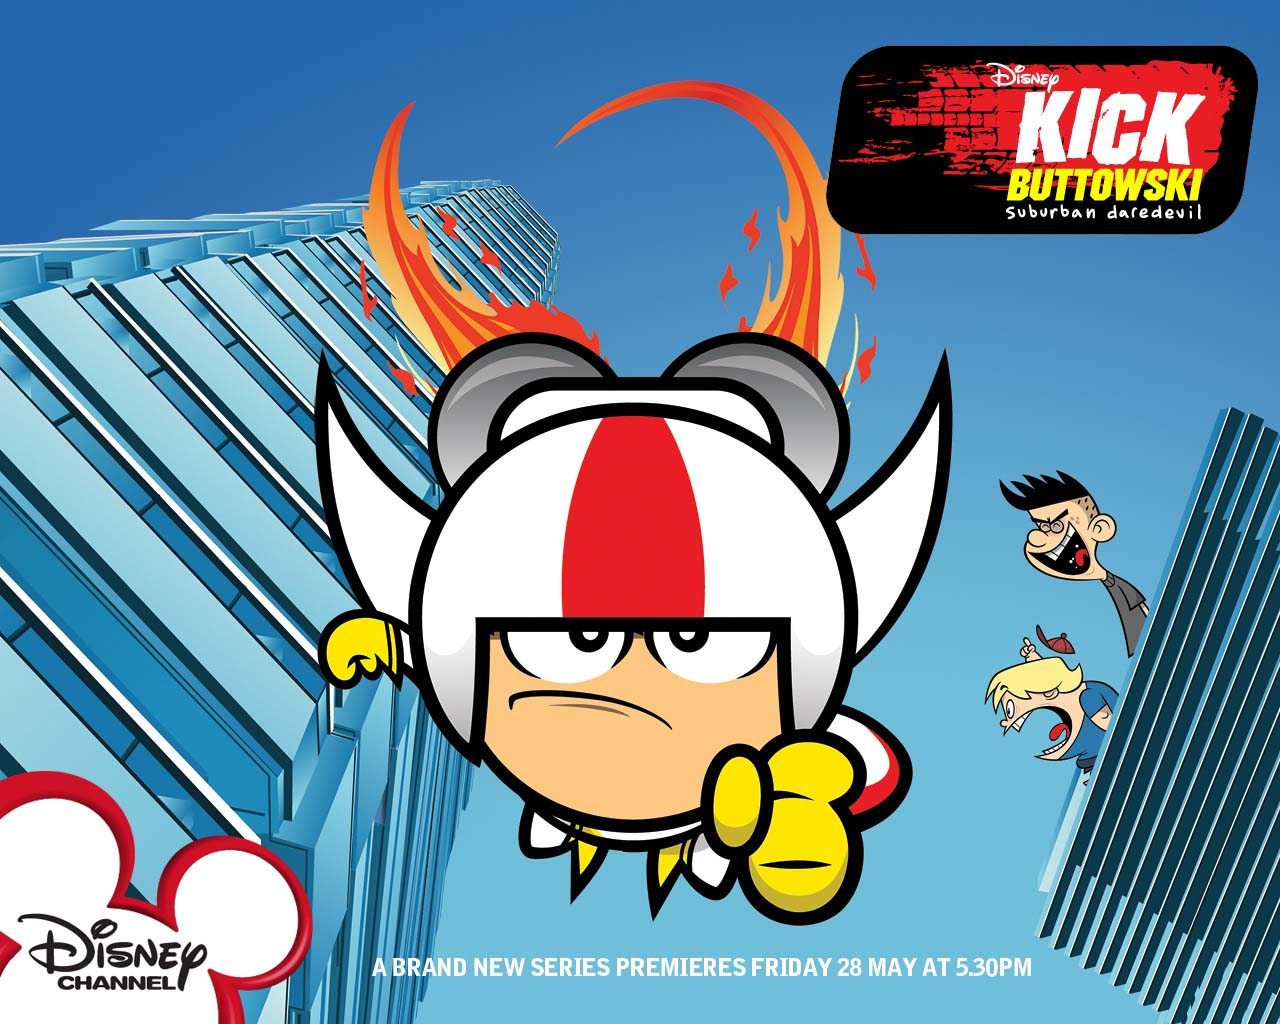 KICK BUTTOWSKI MEDIO DOBLE DE RIESGO